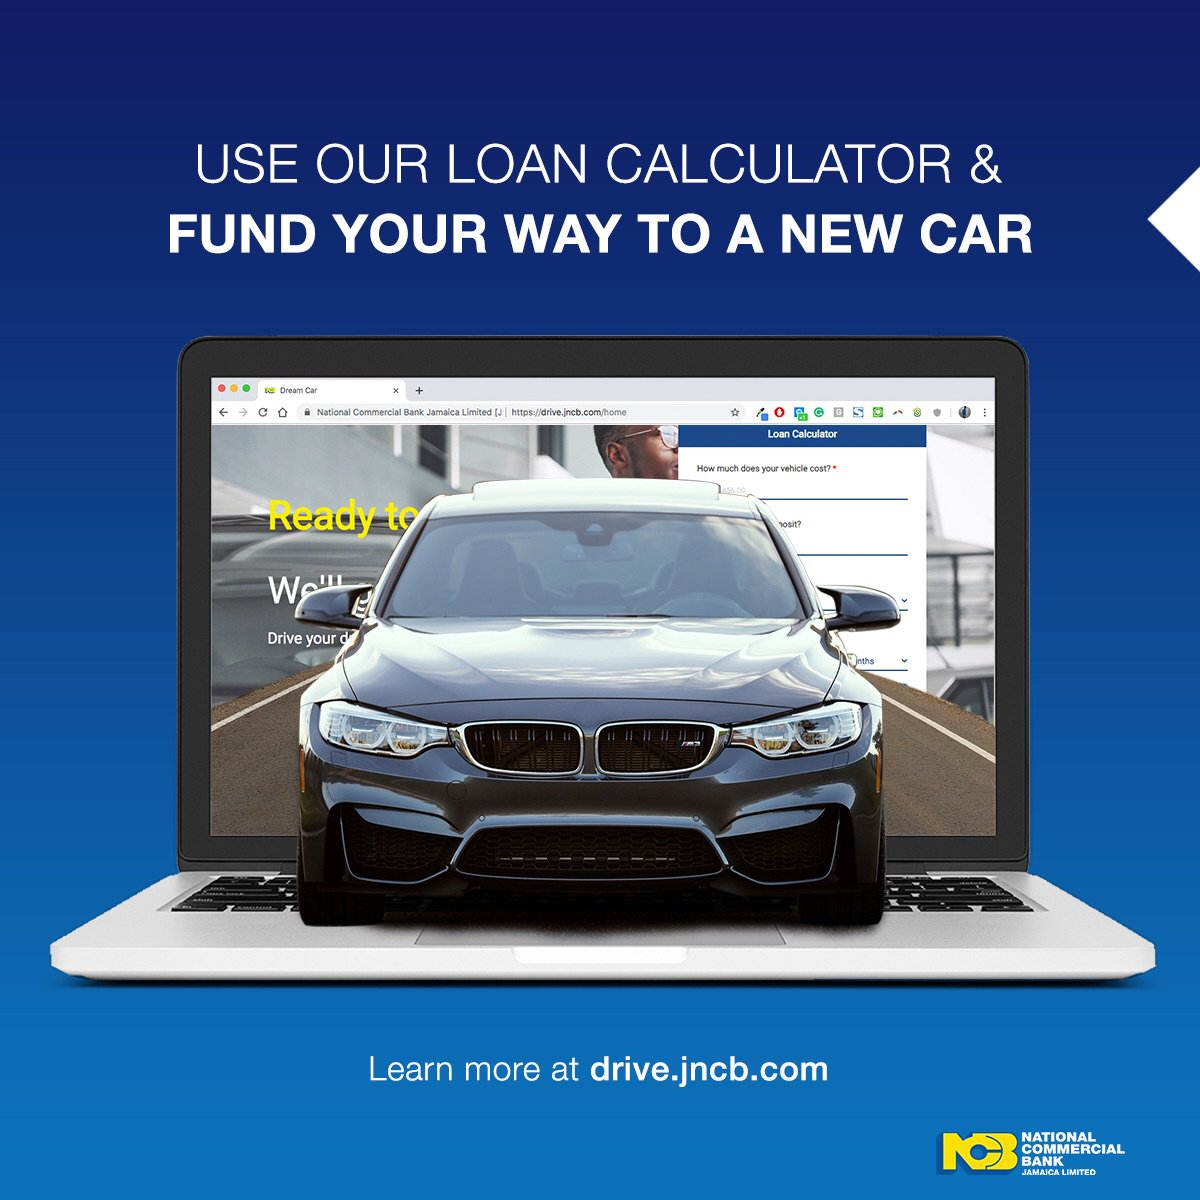 Ncb Jamaica On Twitter Need A New Car Visit Https T Co 4ylrfyfxkr And Use Our Loan Calculator To Calculate What Your Monthly Payments Will Look Like Https T Co Bfon5sd9dy